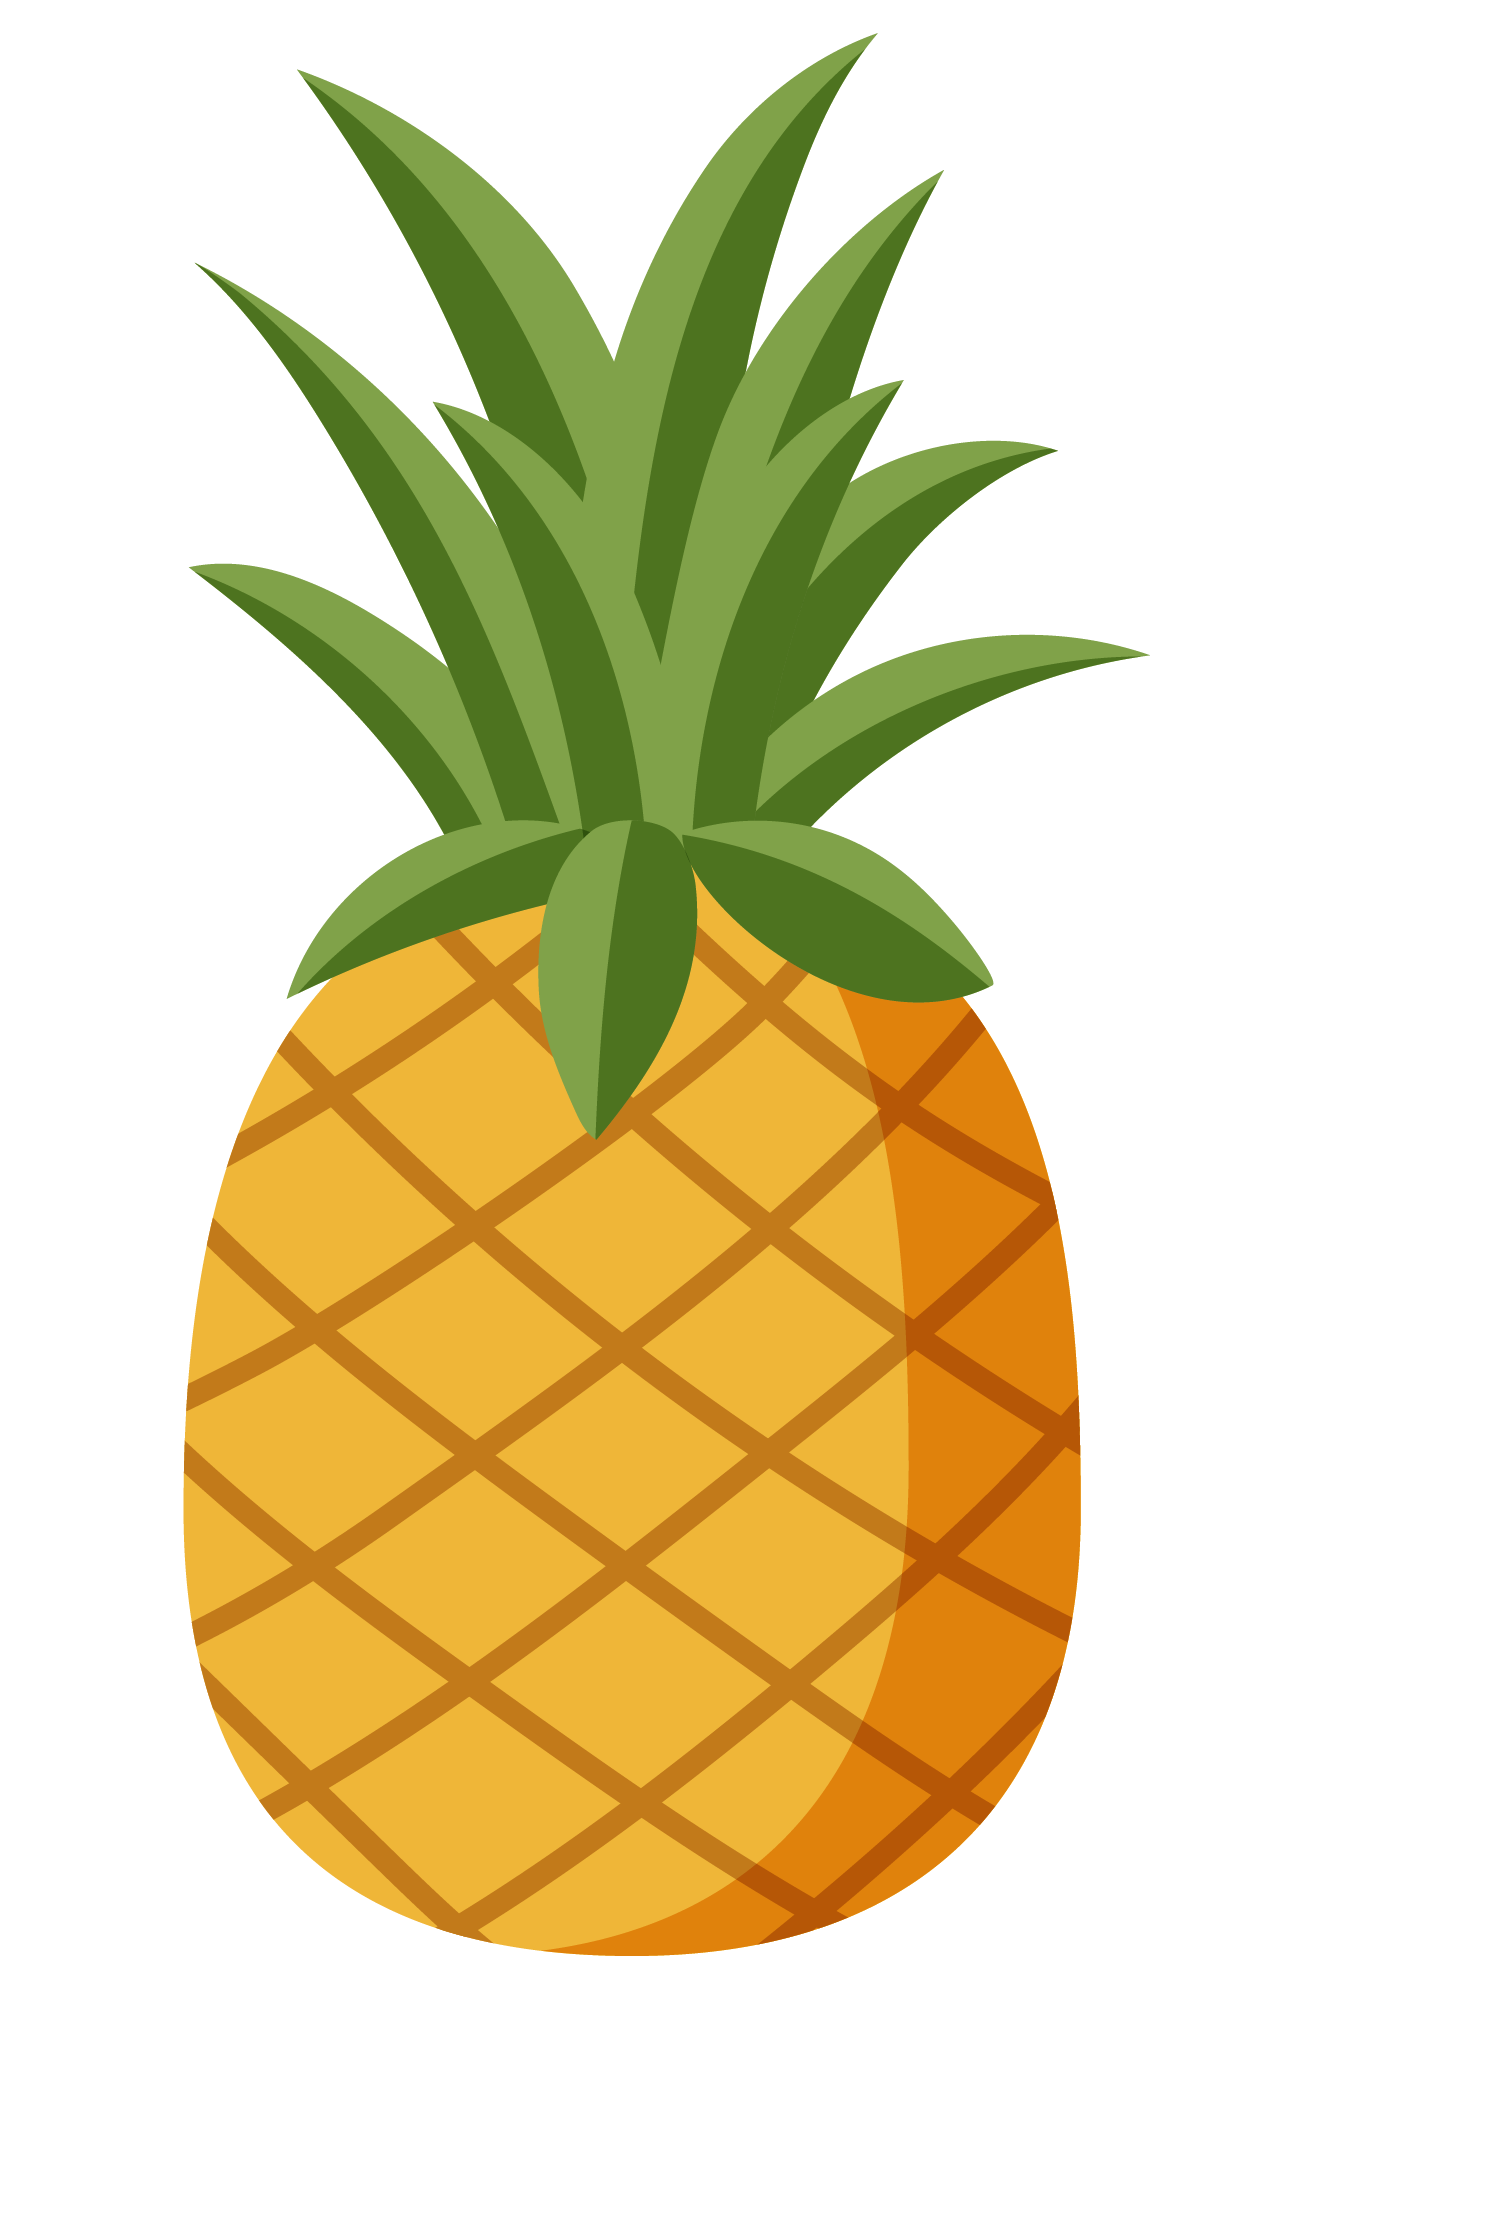 Hawaiian pizza clip art. Pear clipart pineapple